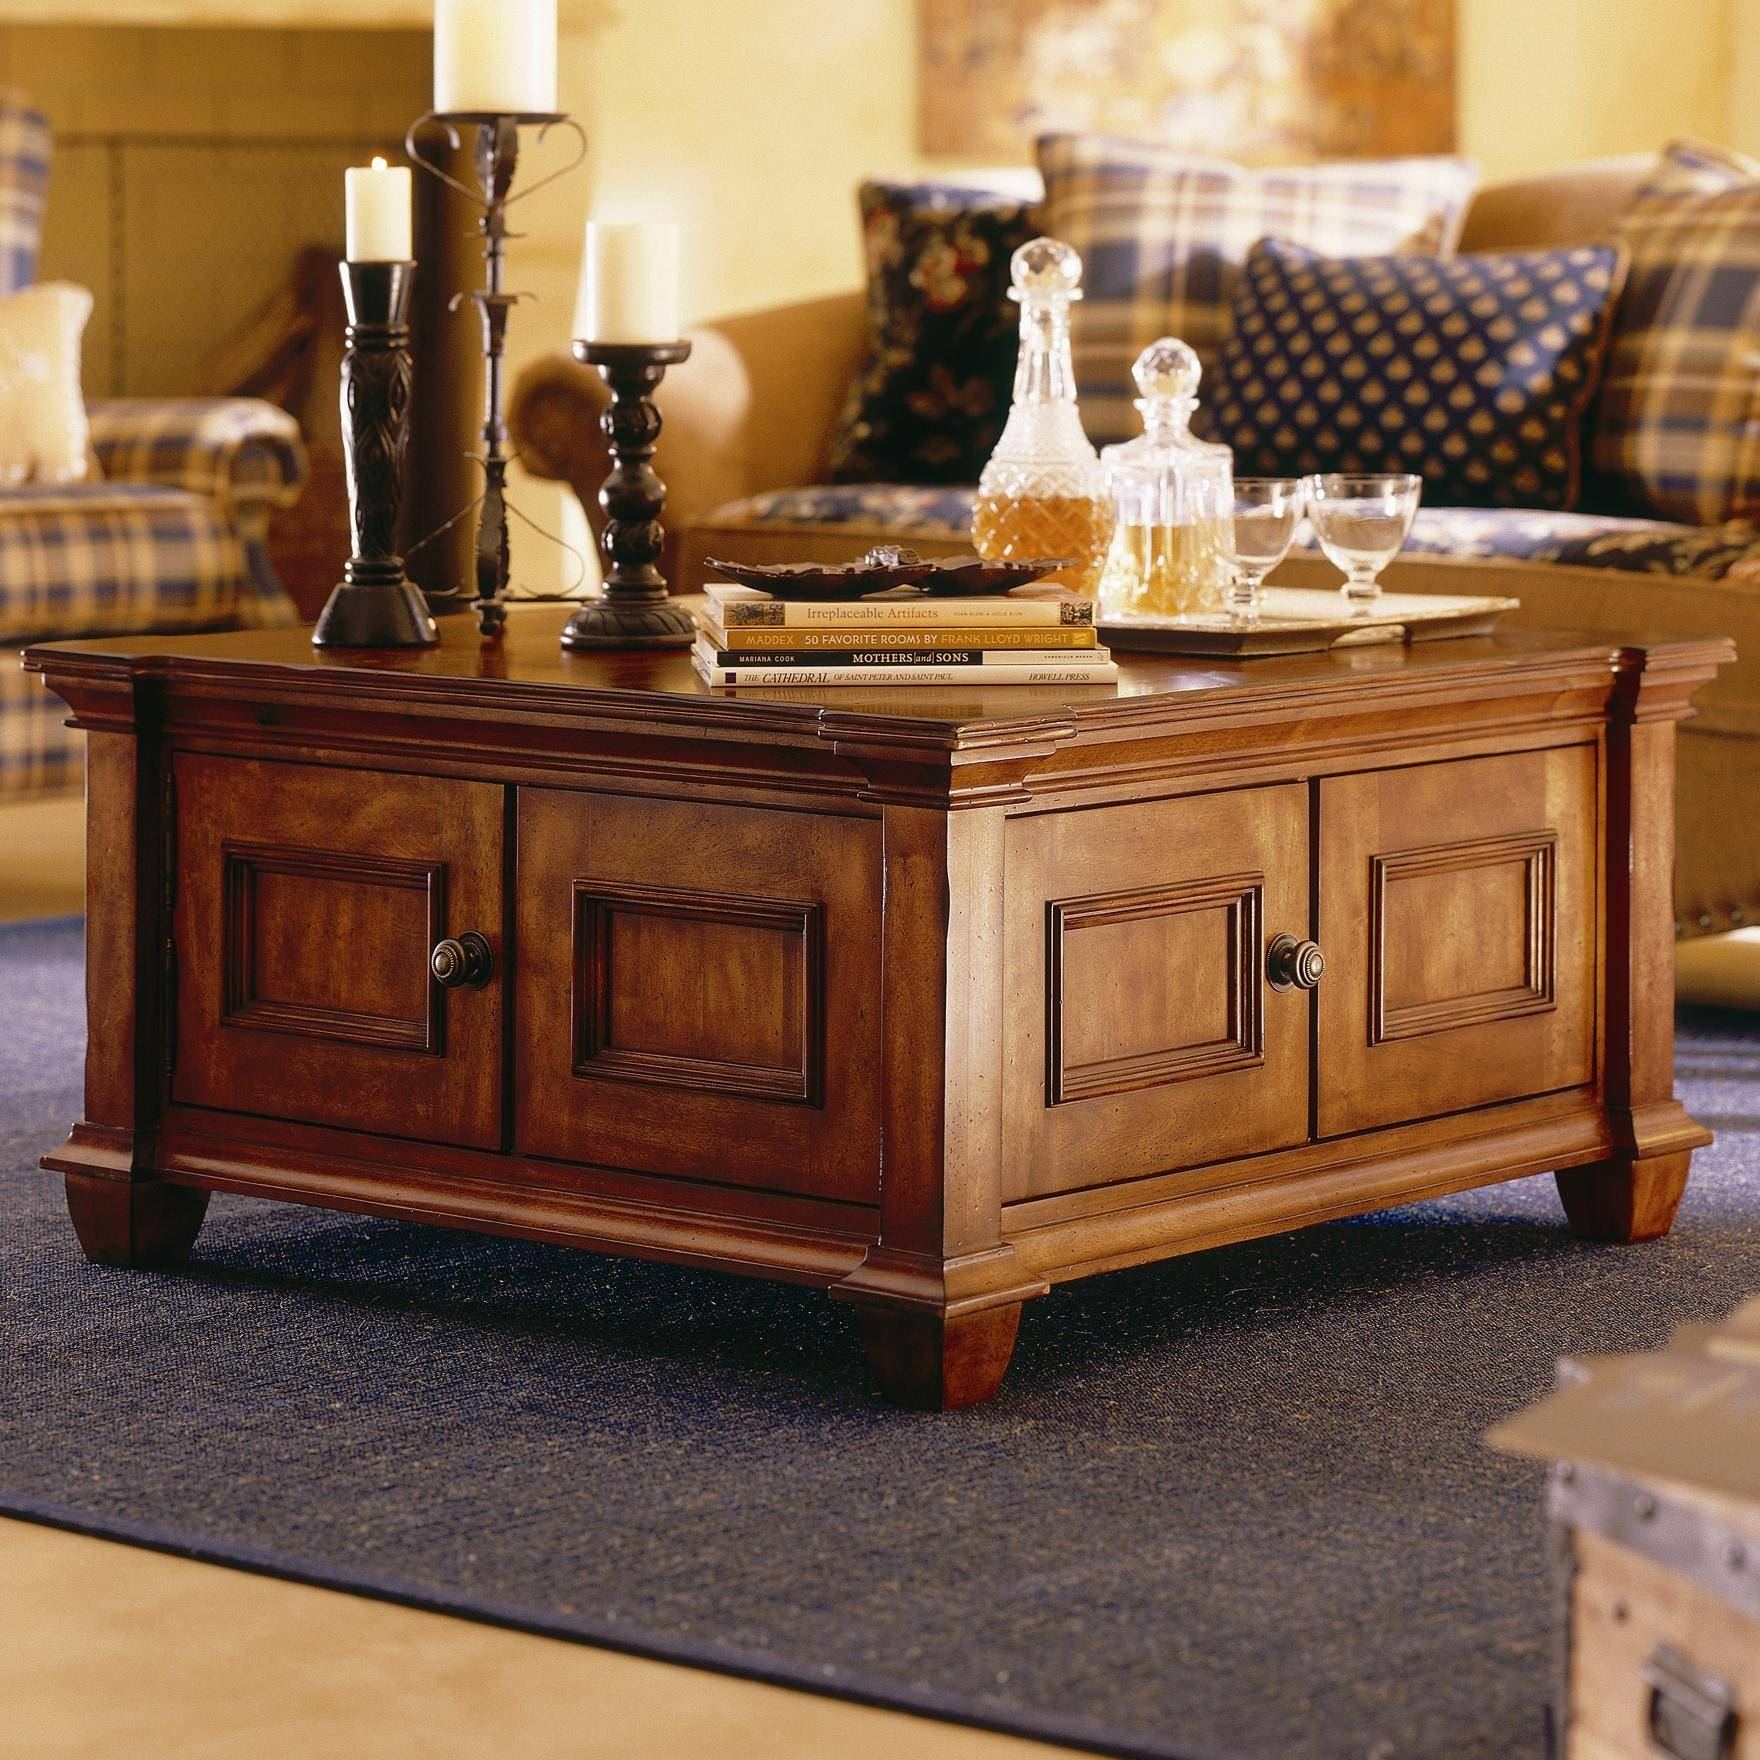 Storage Coffee Tables In The Model Of Cabinet Like | The New Way With Storage Coffee Tables (View 28 of 30)